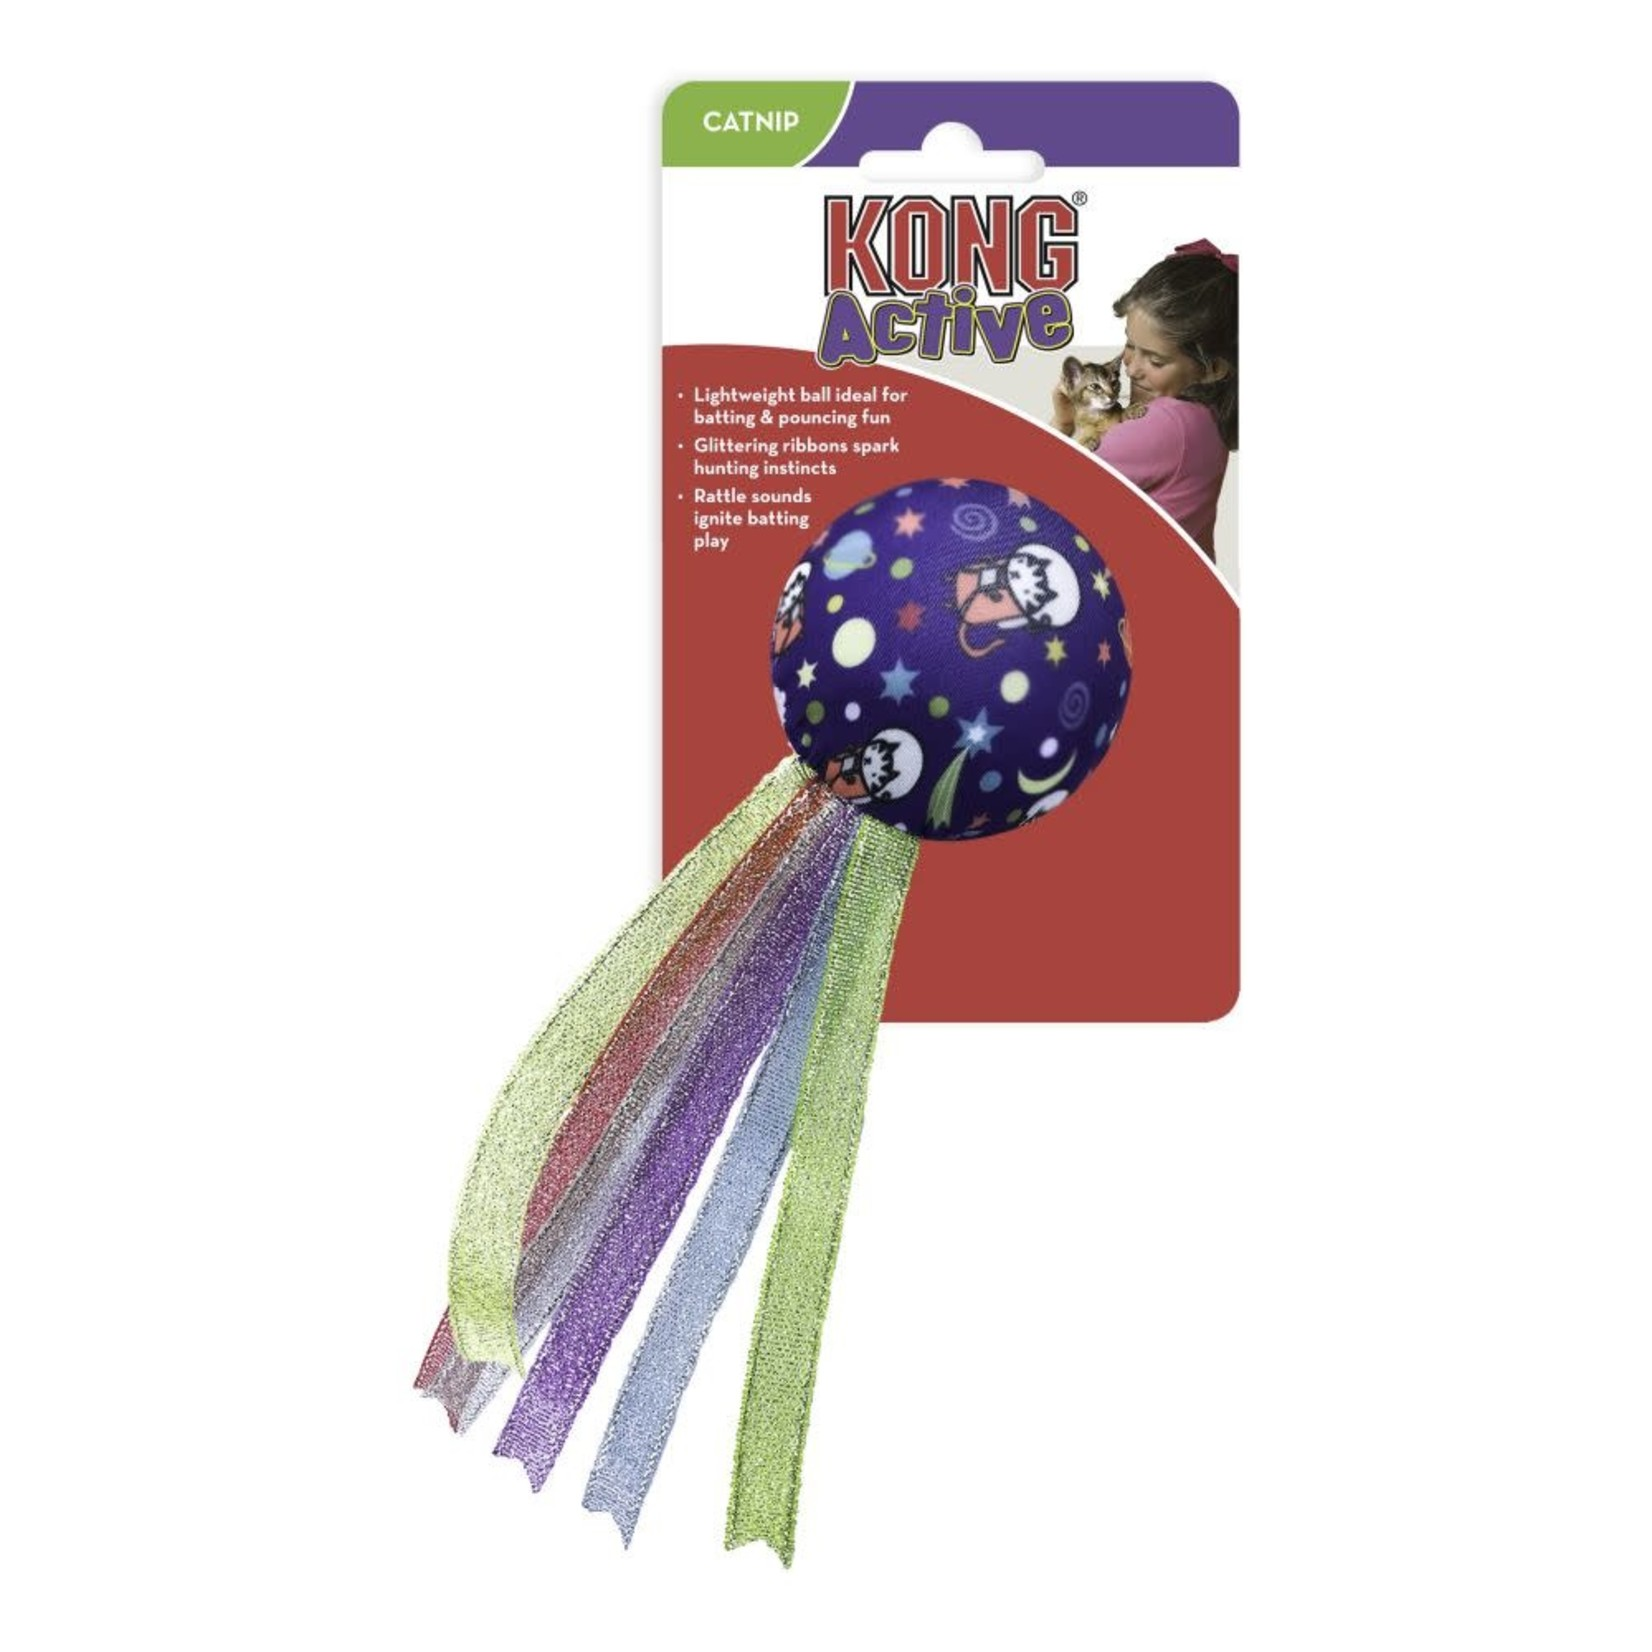 Kong Kong Active space ball Cat Toy